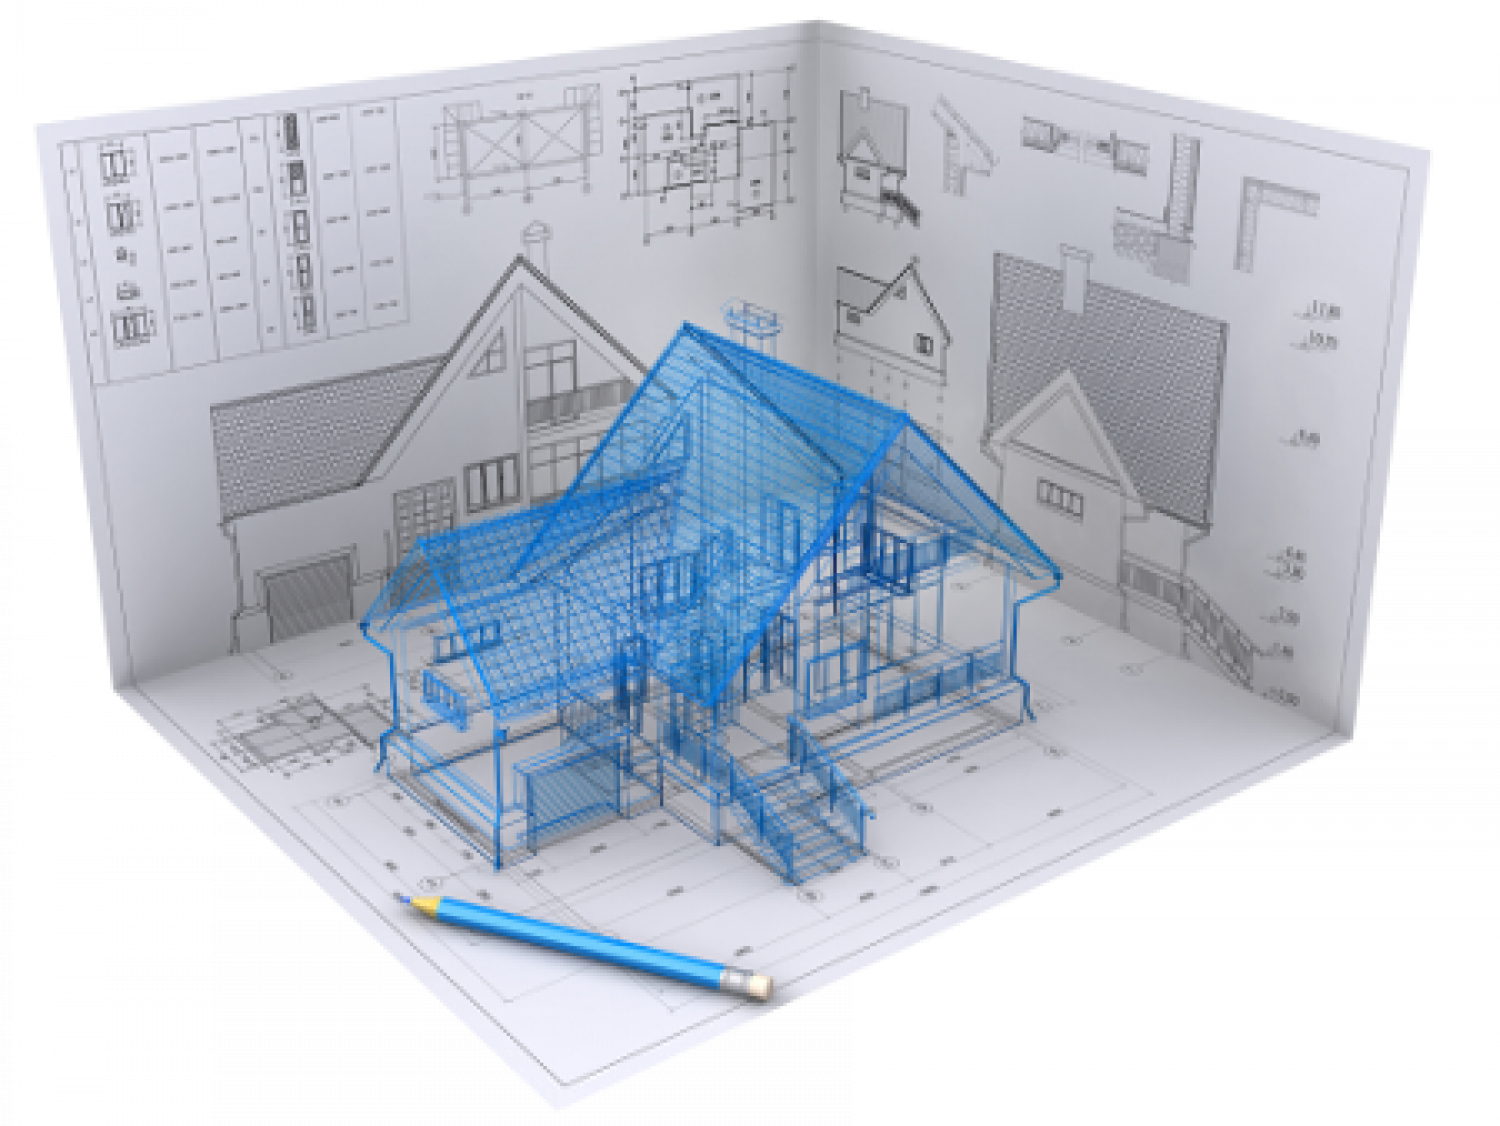 Architectural drafting services for Architectural design services